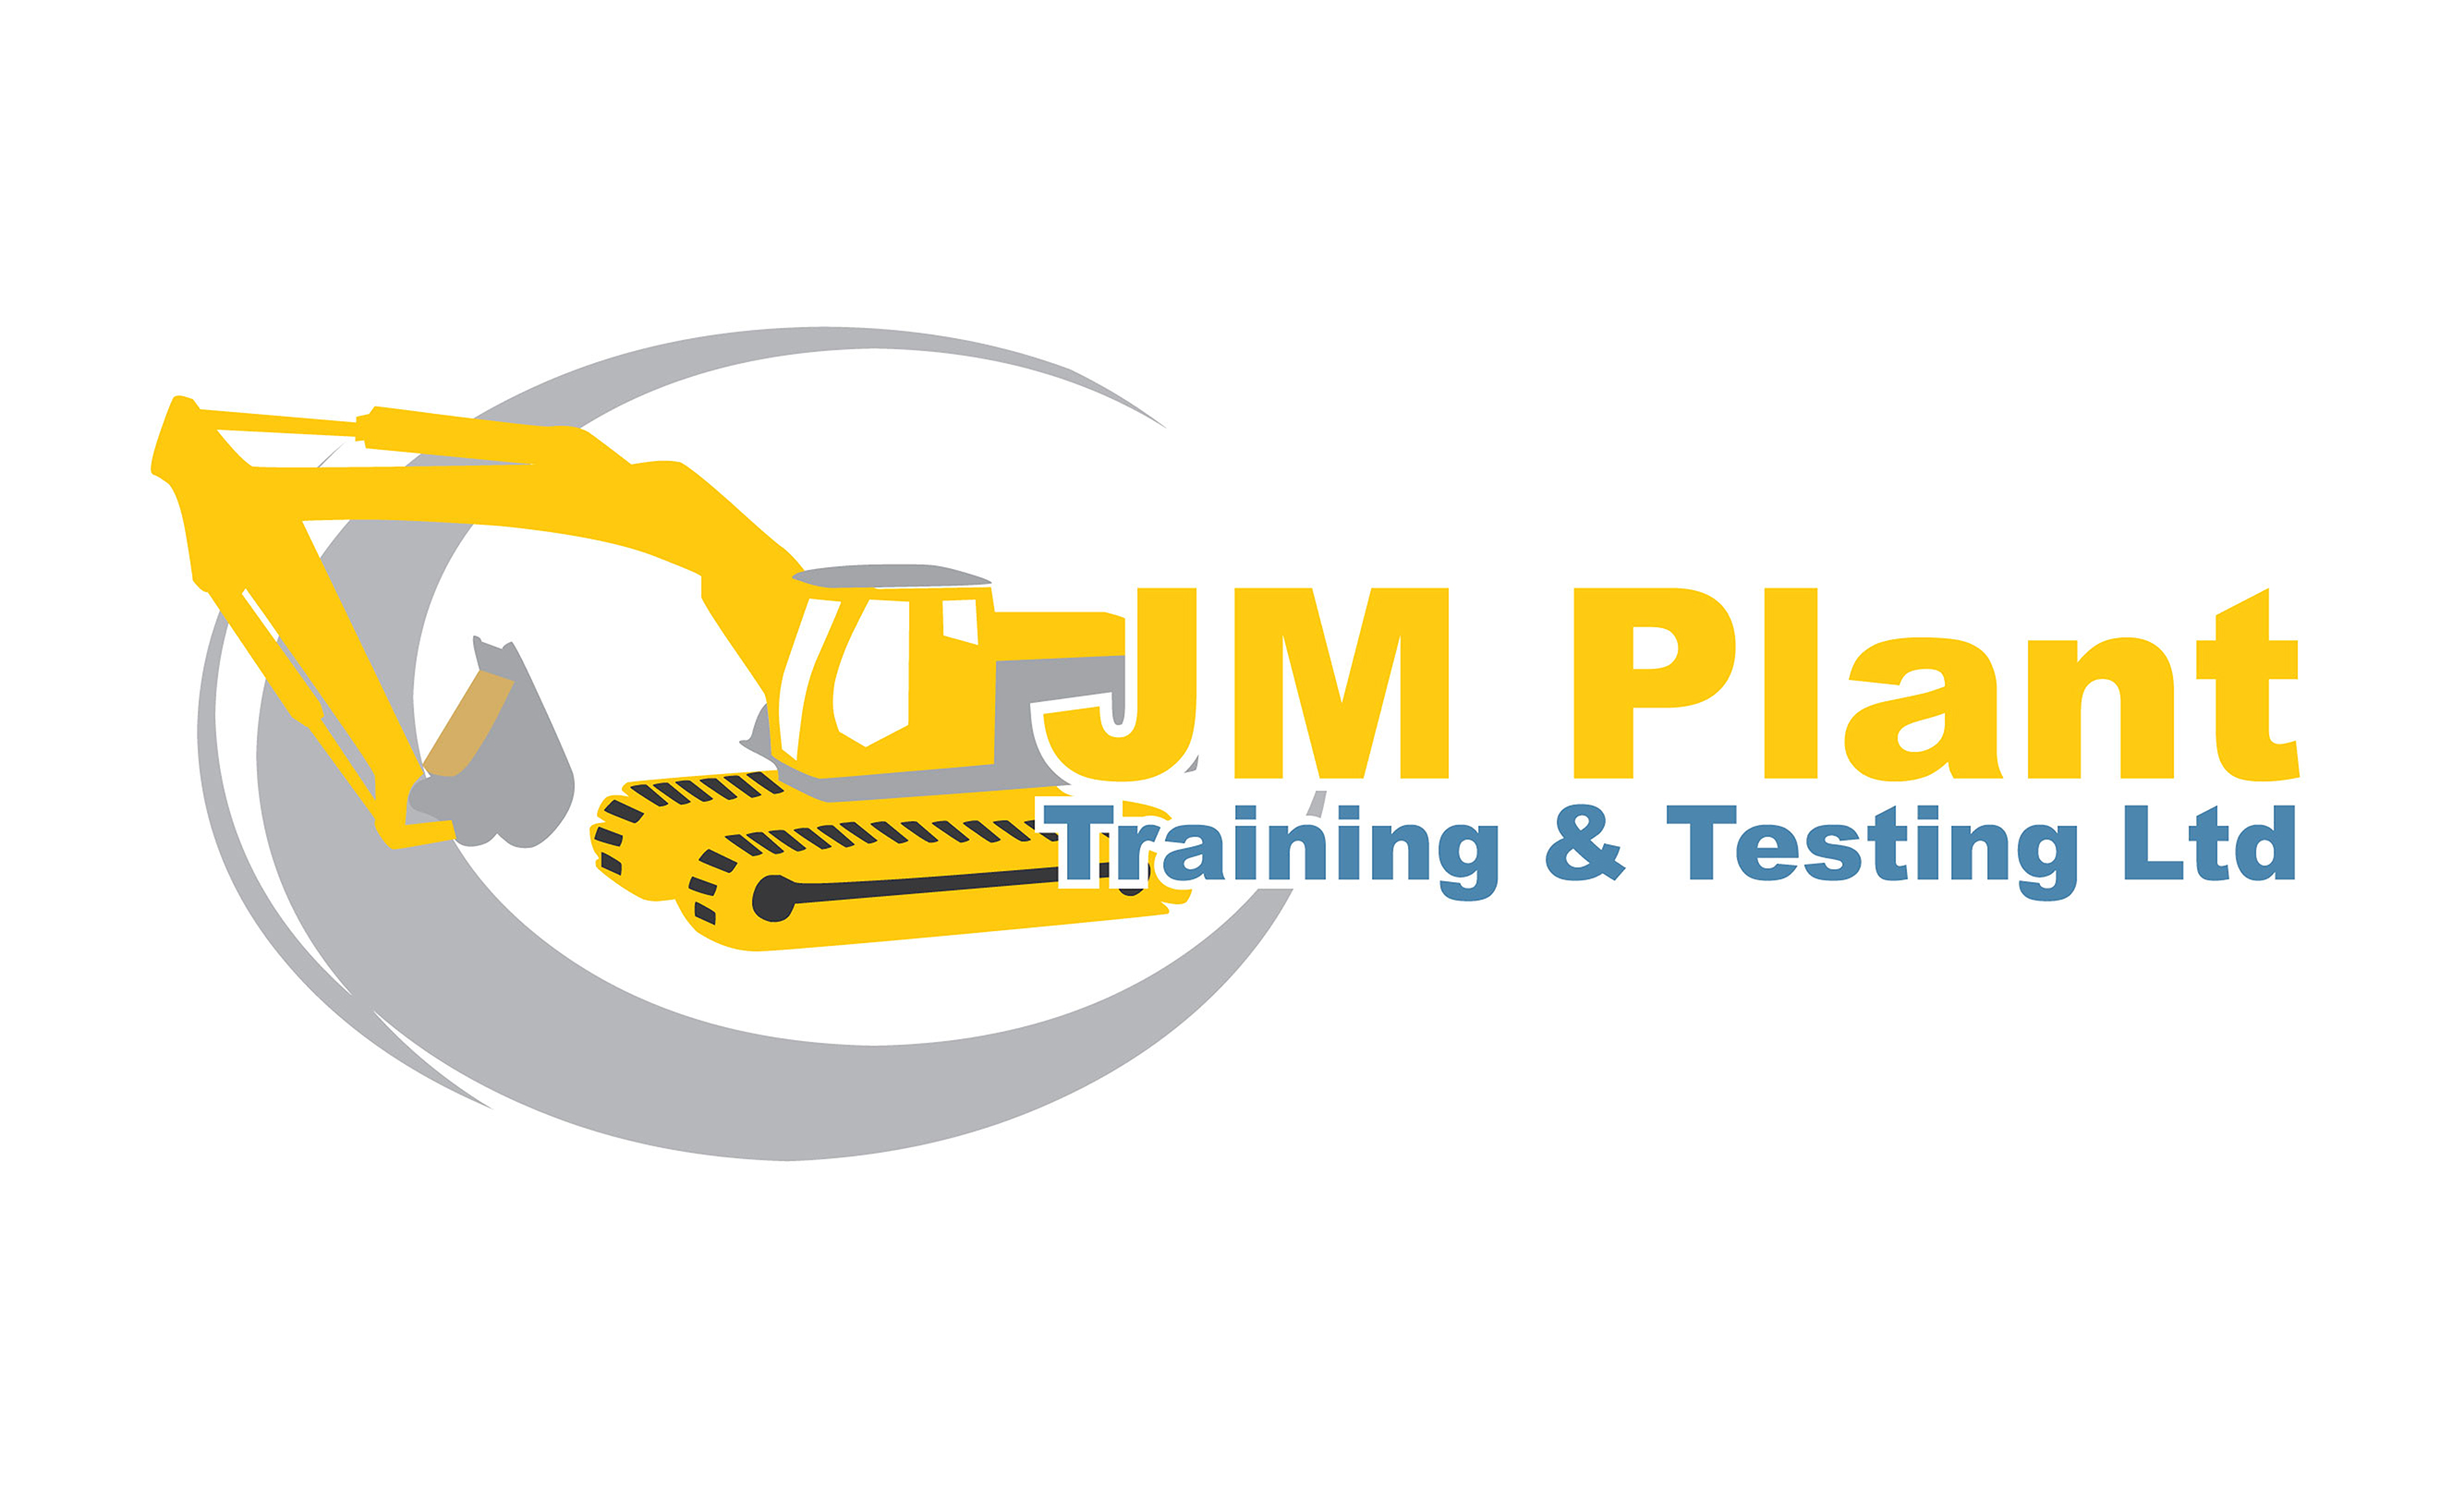 JM Plant Training & Testing Ltd